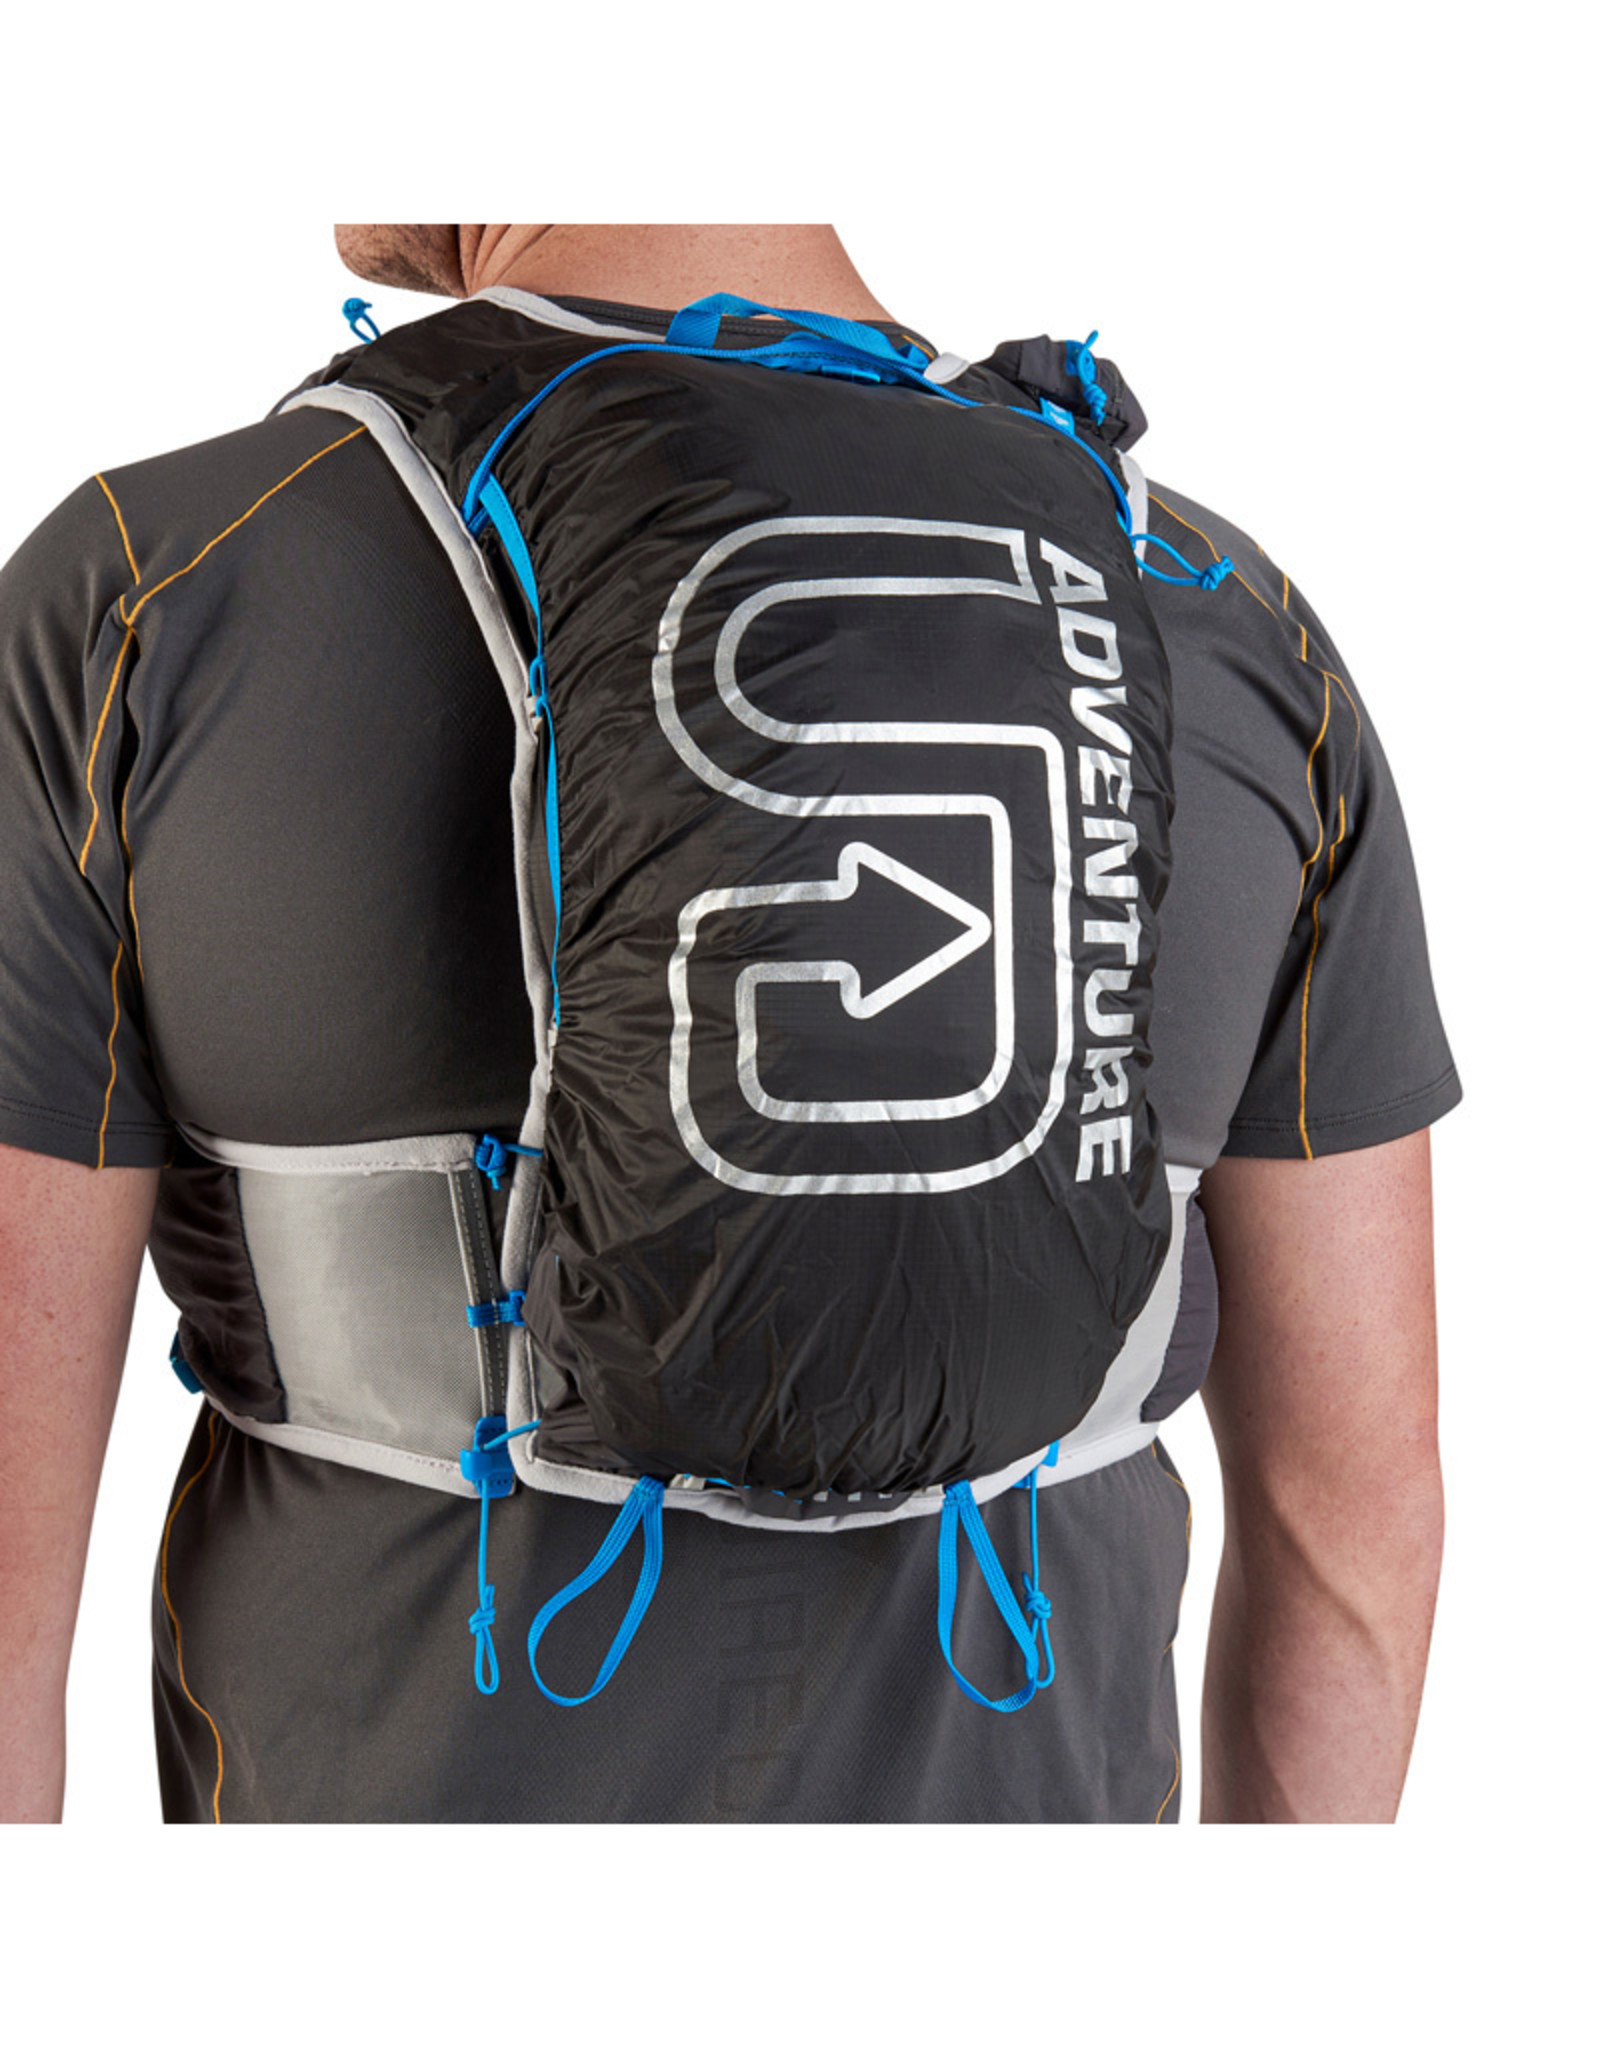 Ultimate Direction Adventure Vest 5.0 Trail Rugzak - Night Sky